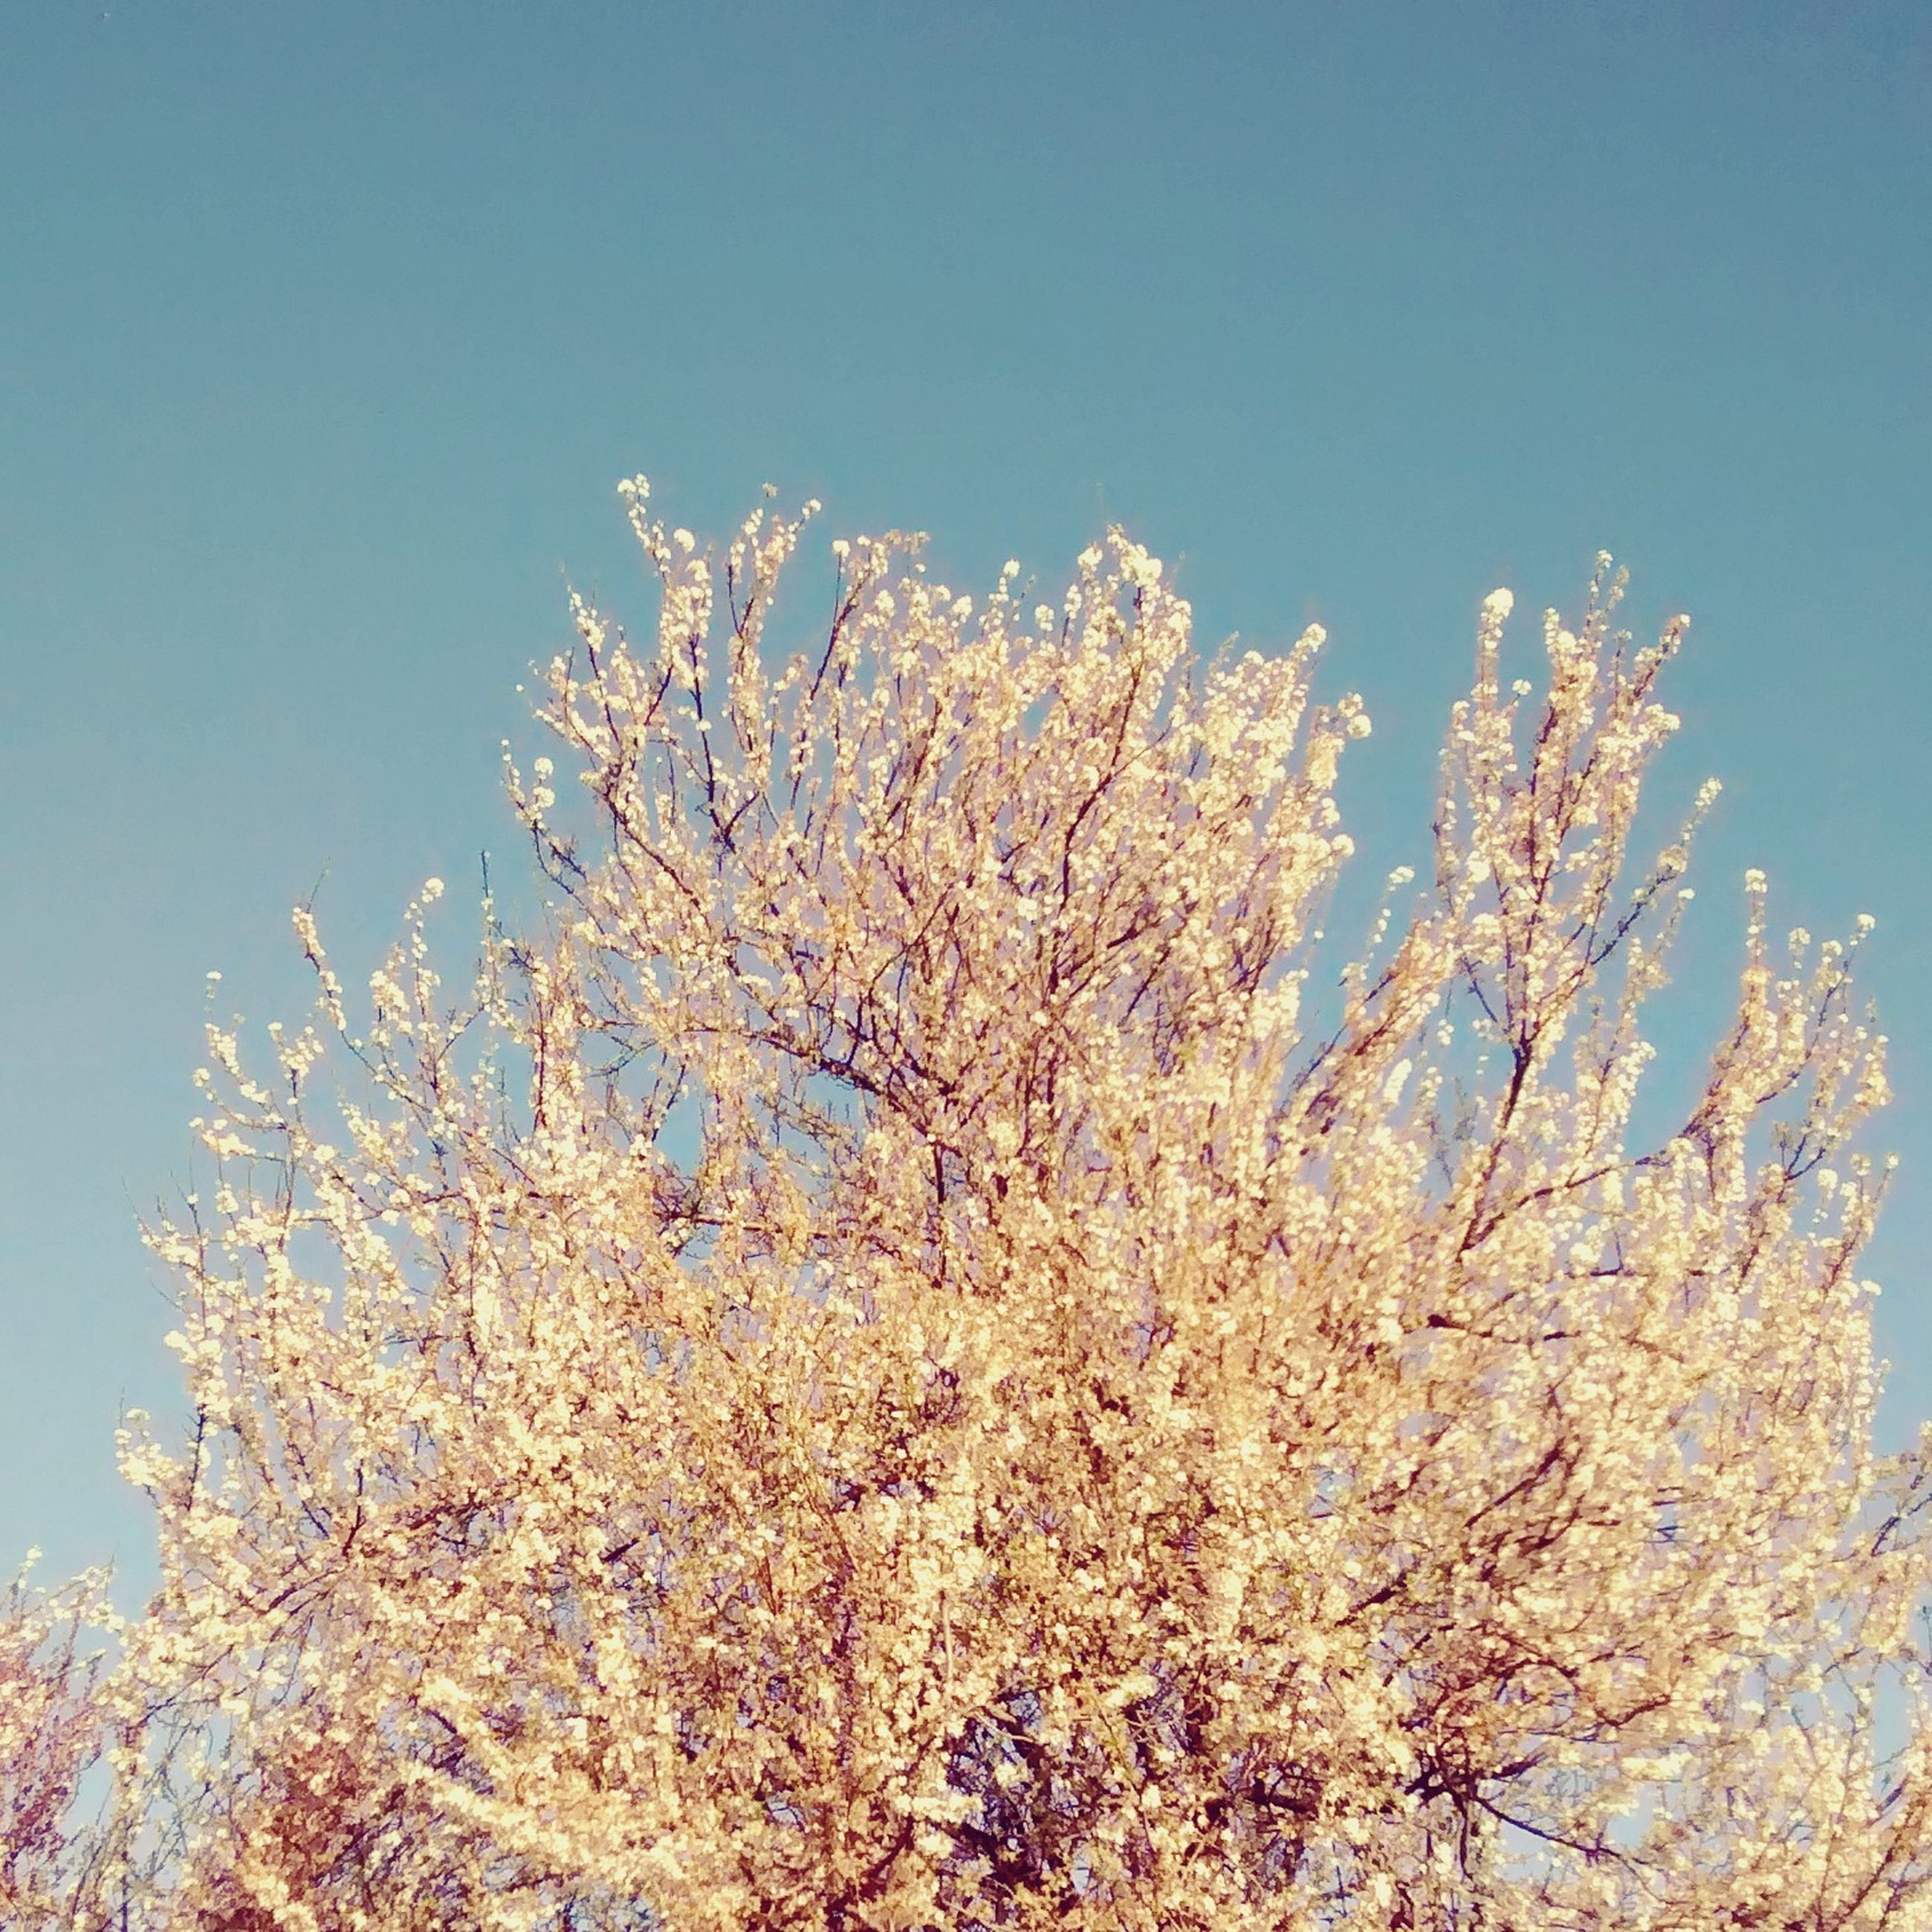 tree, low angle view, season, cold temperature, beauty in nature, snow, winter, clear sky, branch, white, weather, growth, nature, scenics, high section, flower, sky, day, tranquil scene, blue, blossom, tranquility, in bloom, outdoors, flower tree, freshness, springtime, single tree, no people, treetop, non-urban scene